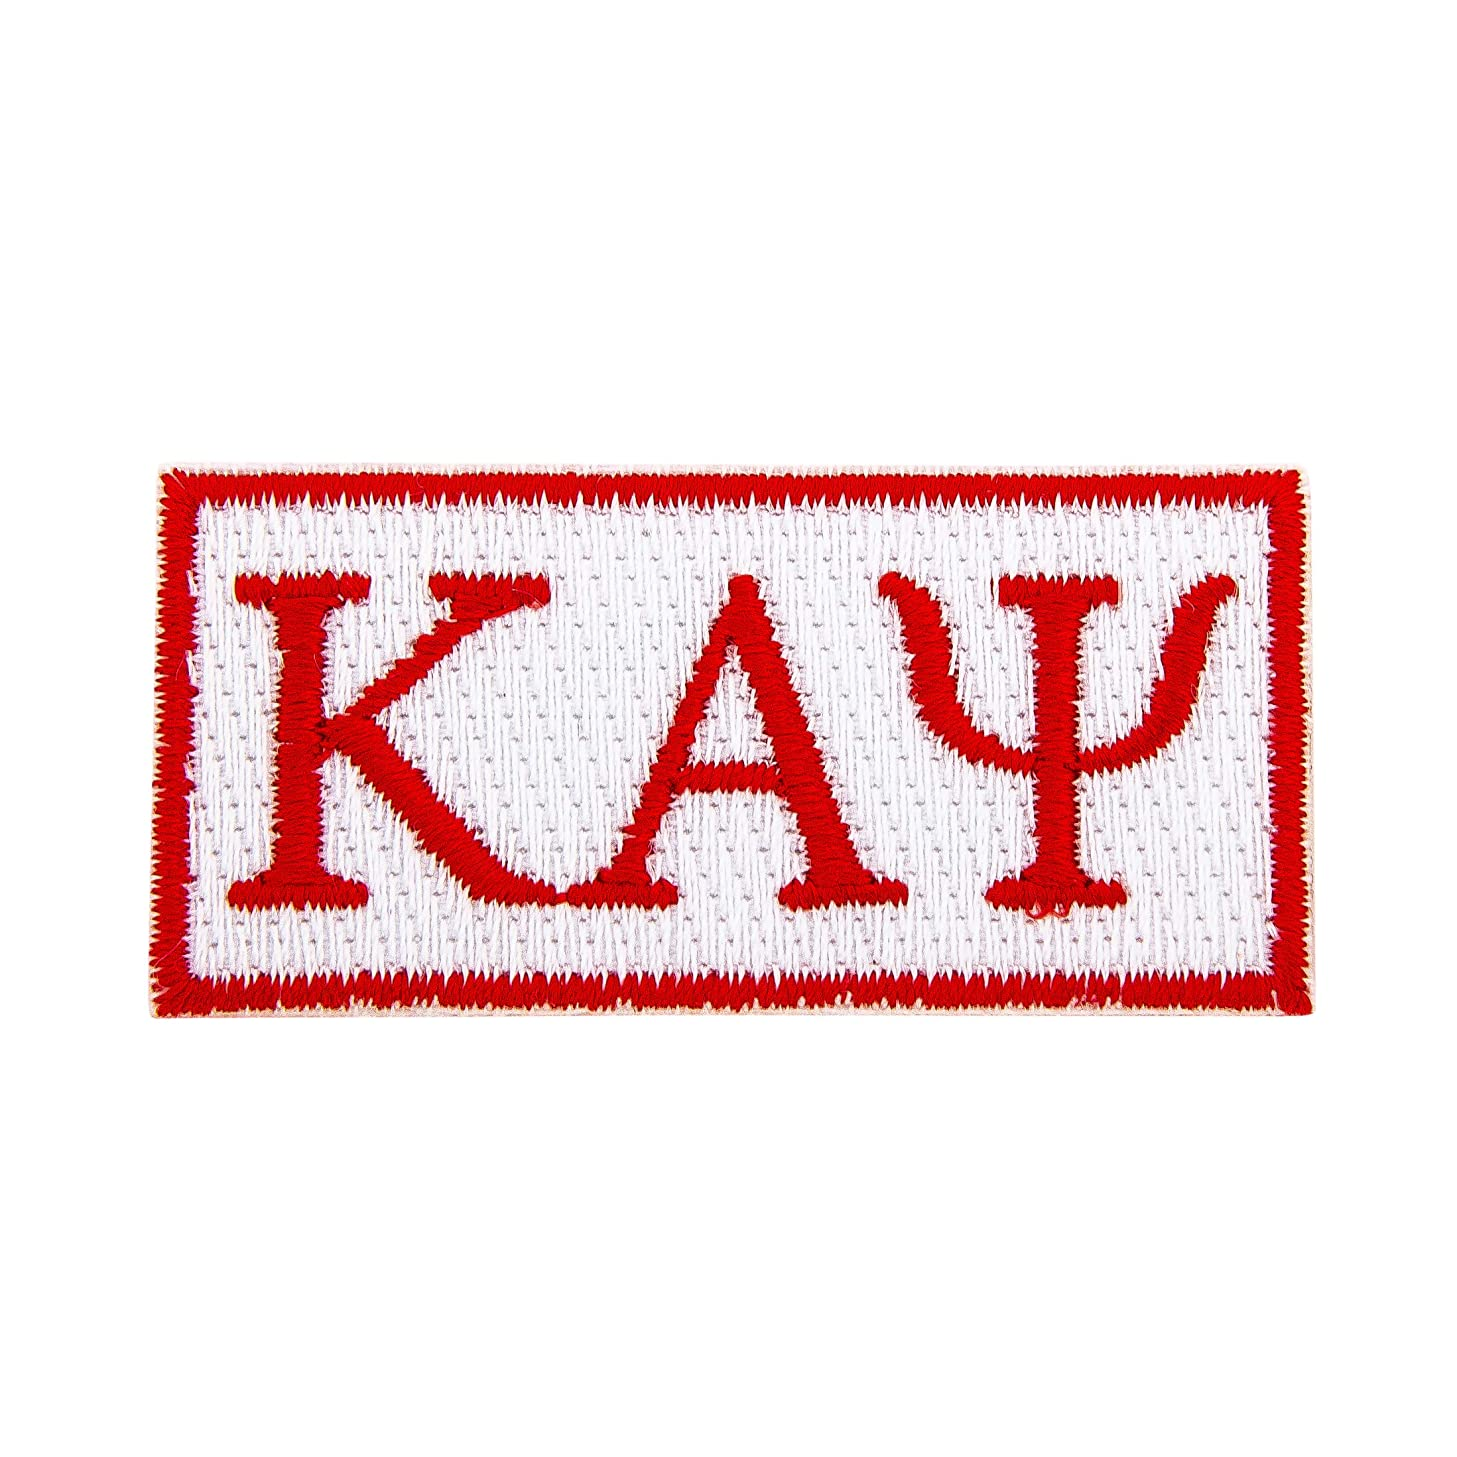 Kappa Alpha Psi Fraternity Rectangle Letter Embroidered Appliqué Patch Sew or Iron On Greek Blazer Jacket Bag Nupe (Rectangle Letter Patch)